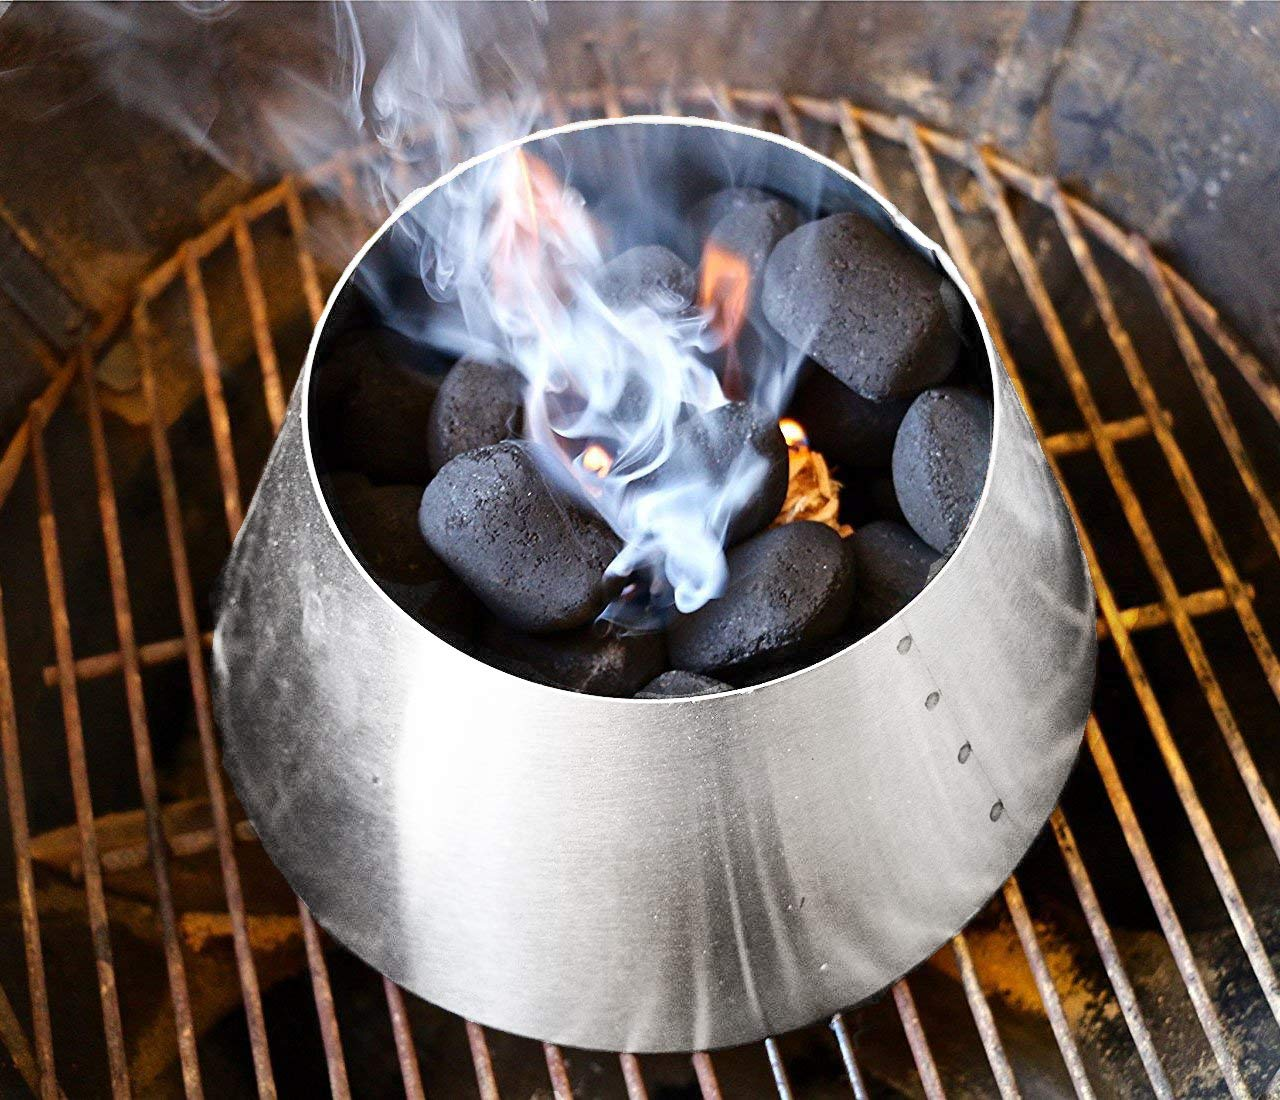 LUTANI BBQ Kettle Grills 22 26.75 WSM - Stainless Steel BBQ Kettle Grill Accessories - Charcoal Kettle Accessory by LUTANI